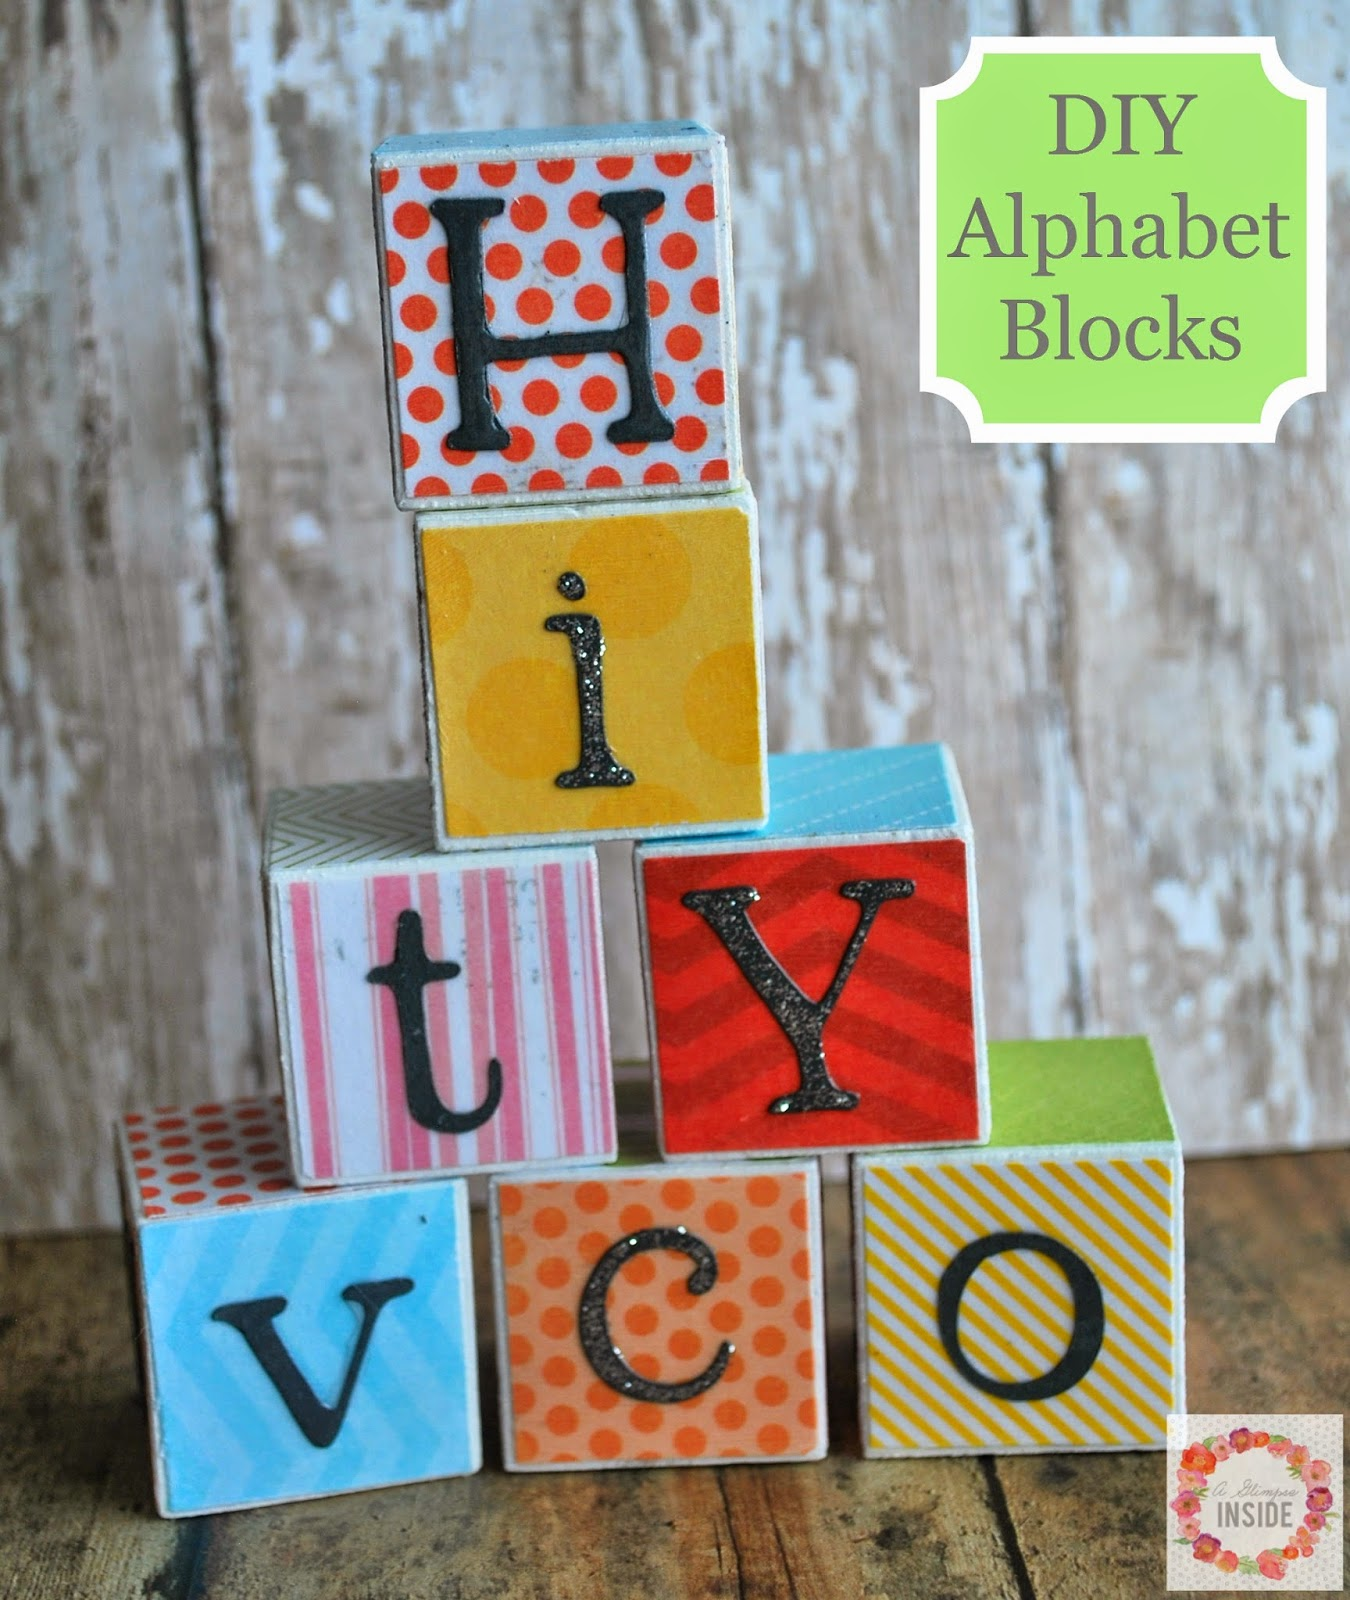 DIY Alphabet Blocks by A Glimpse Inside